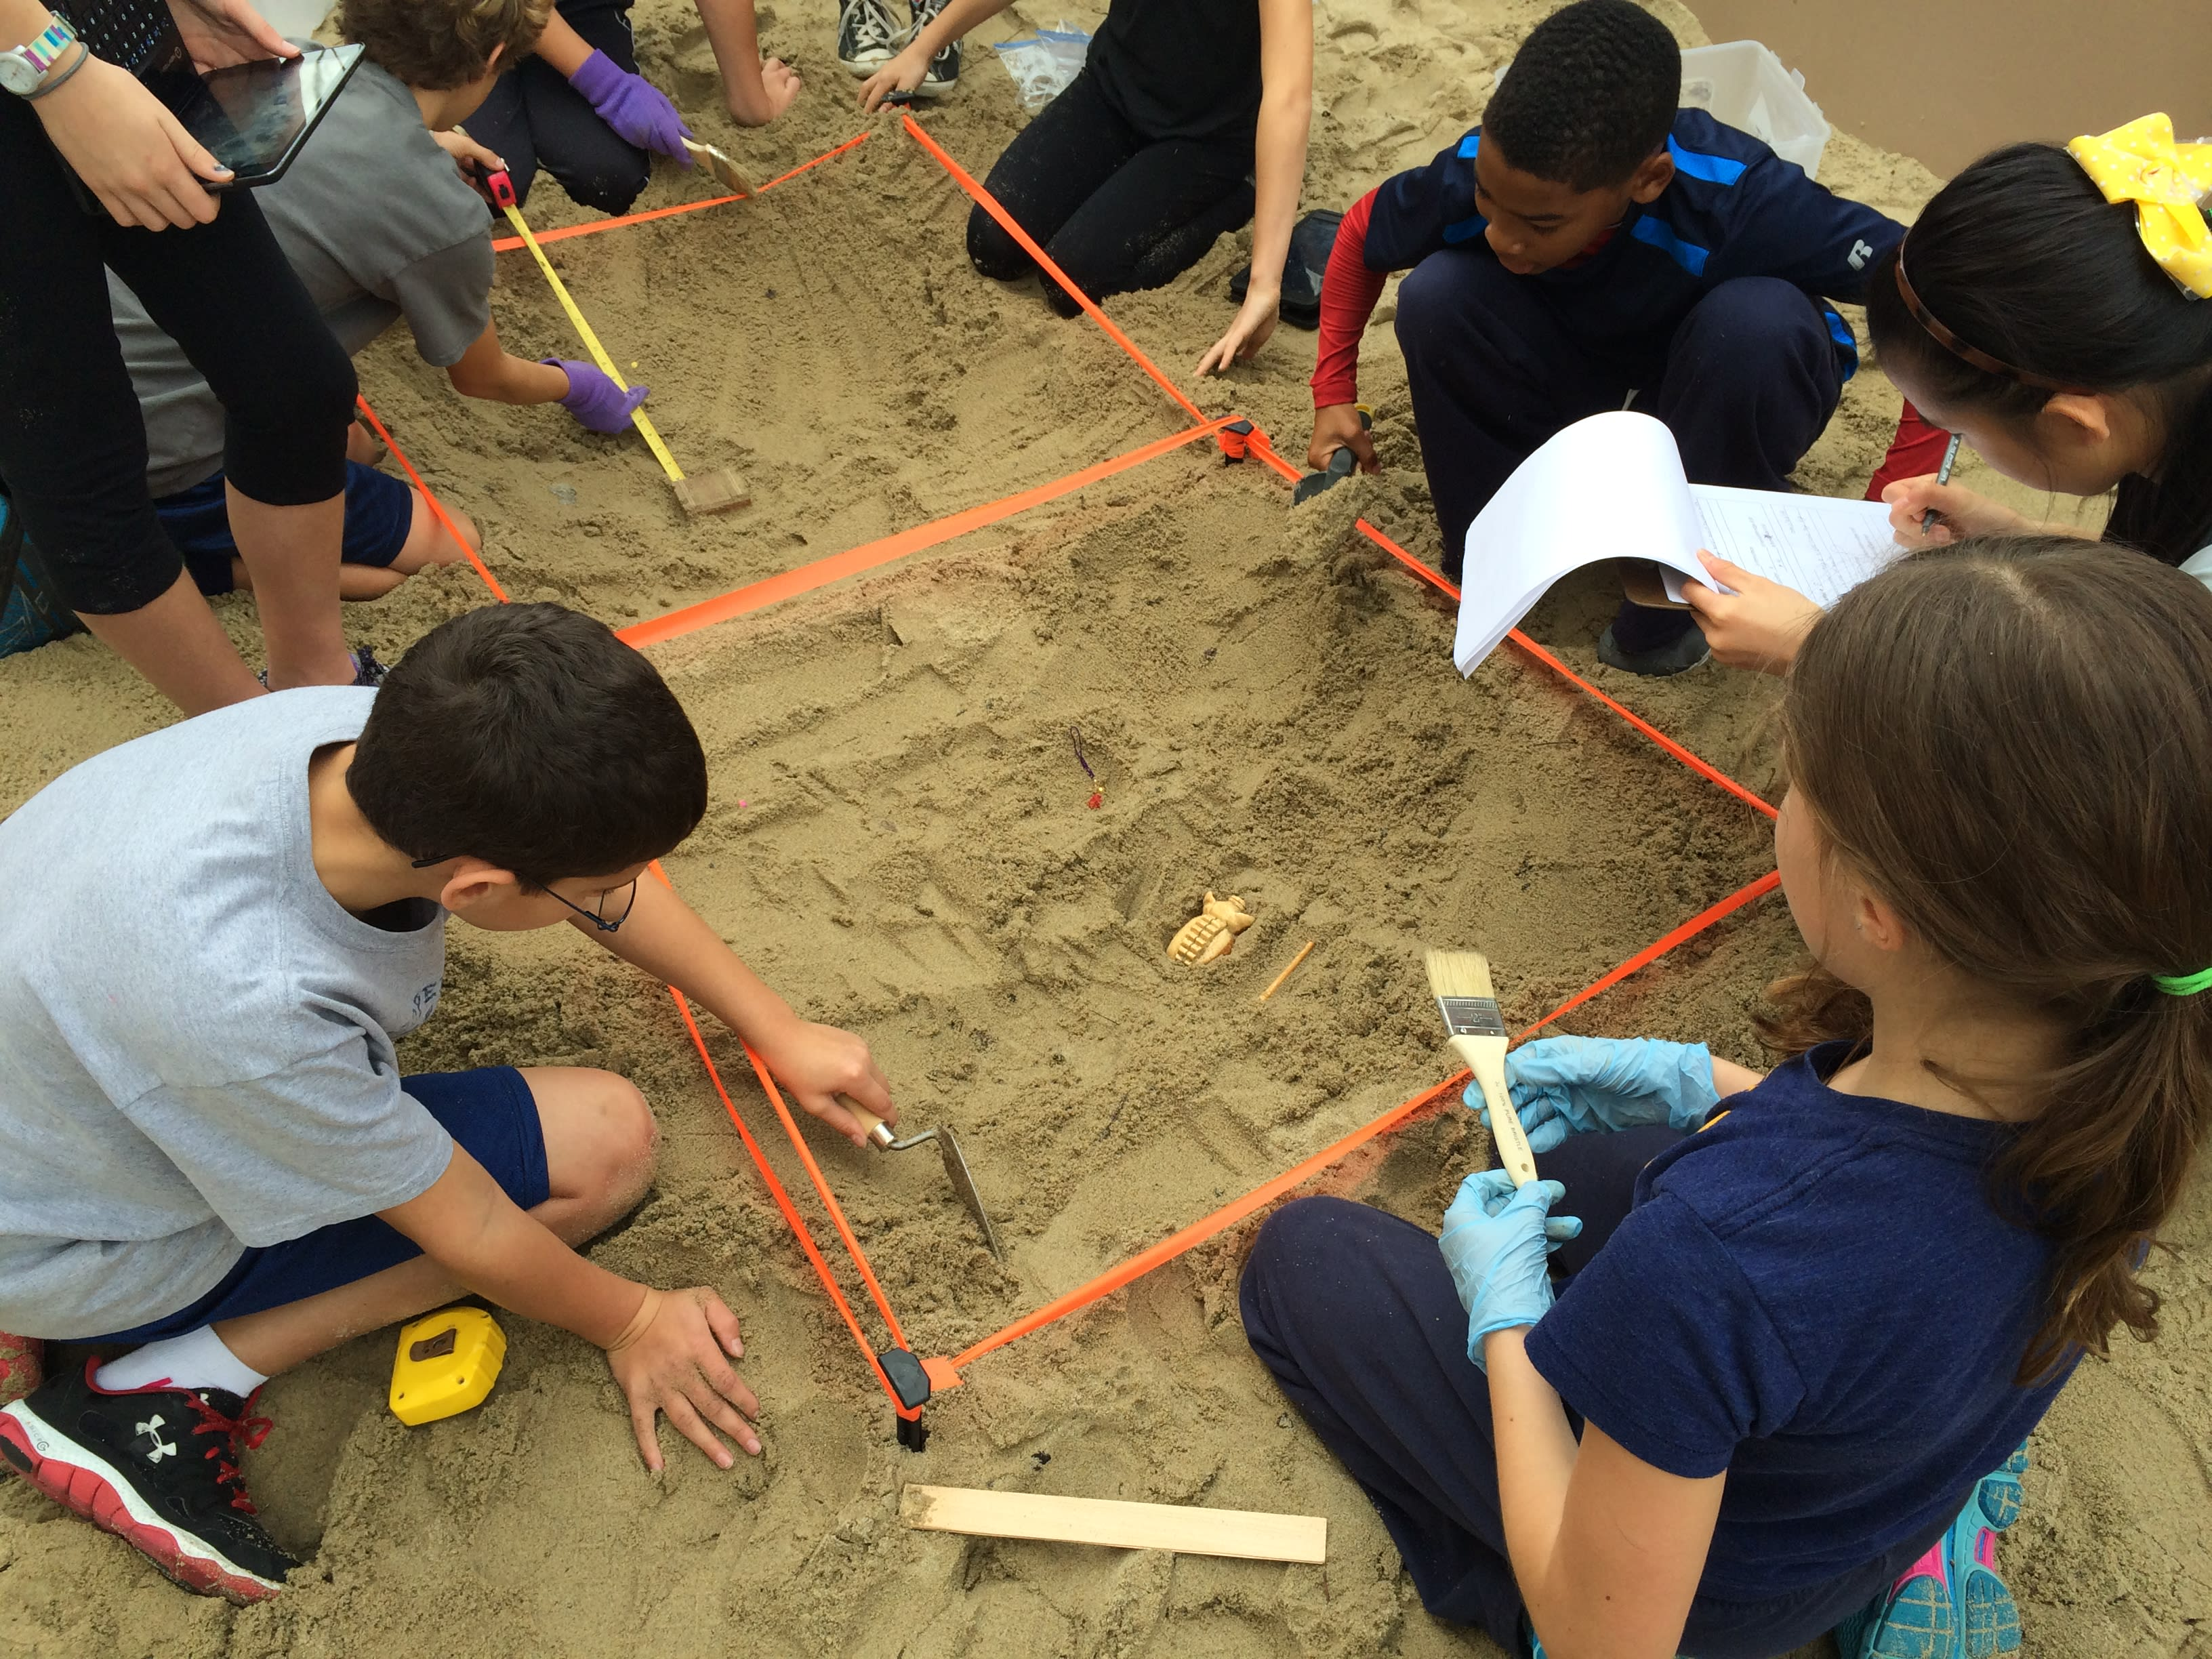 Children participate in an archaeological dig activity